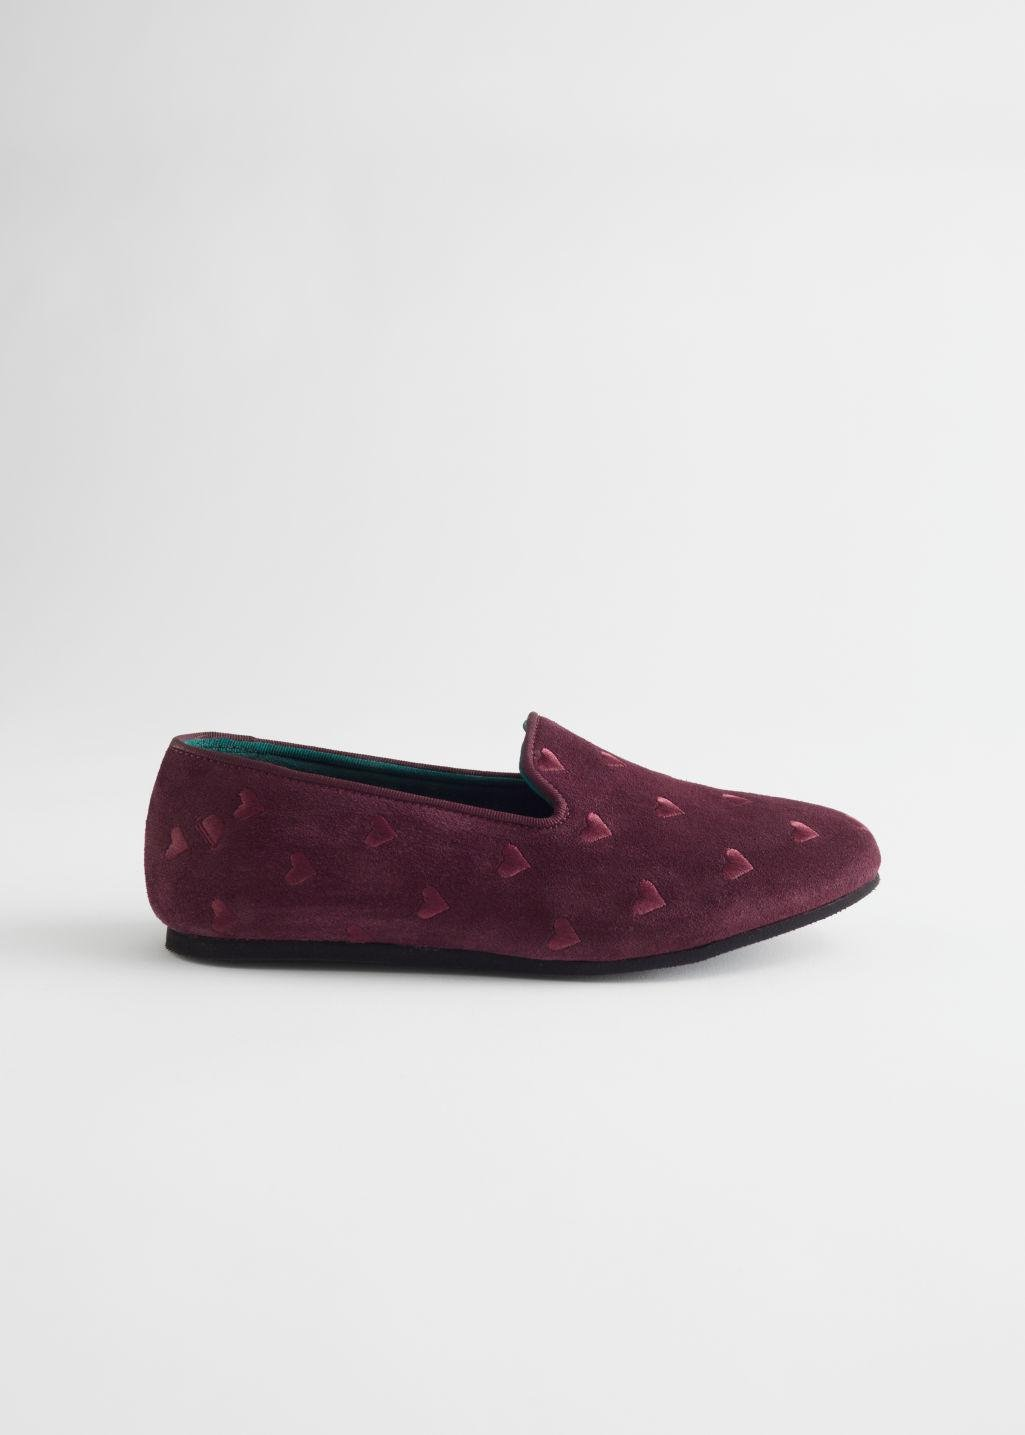 Embroidered Heart Loafer Slippers